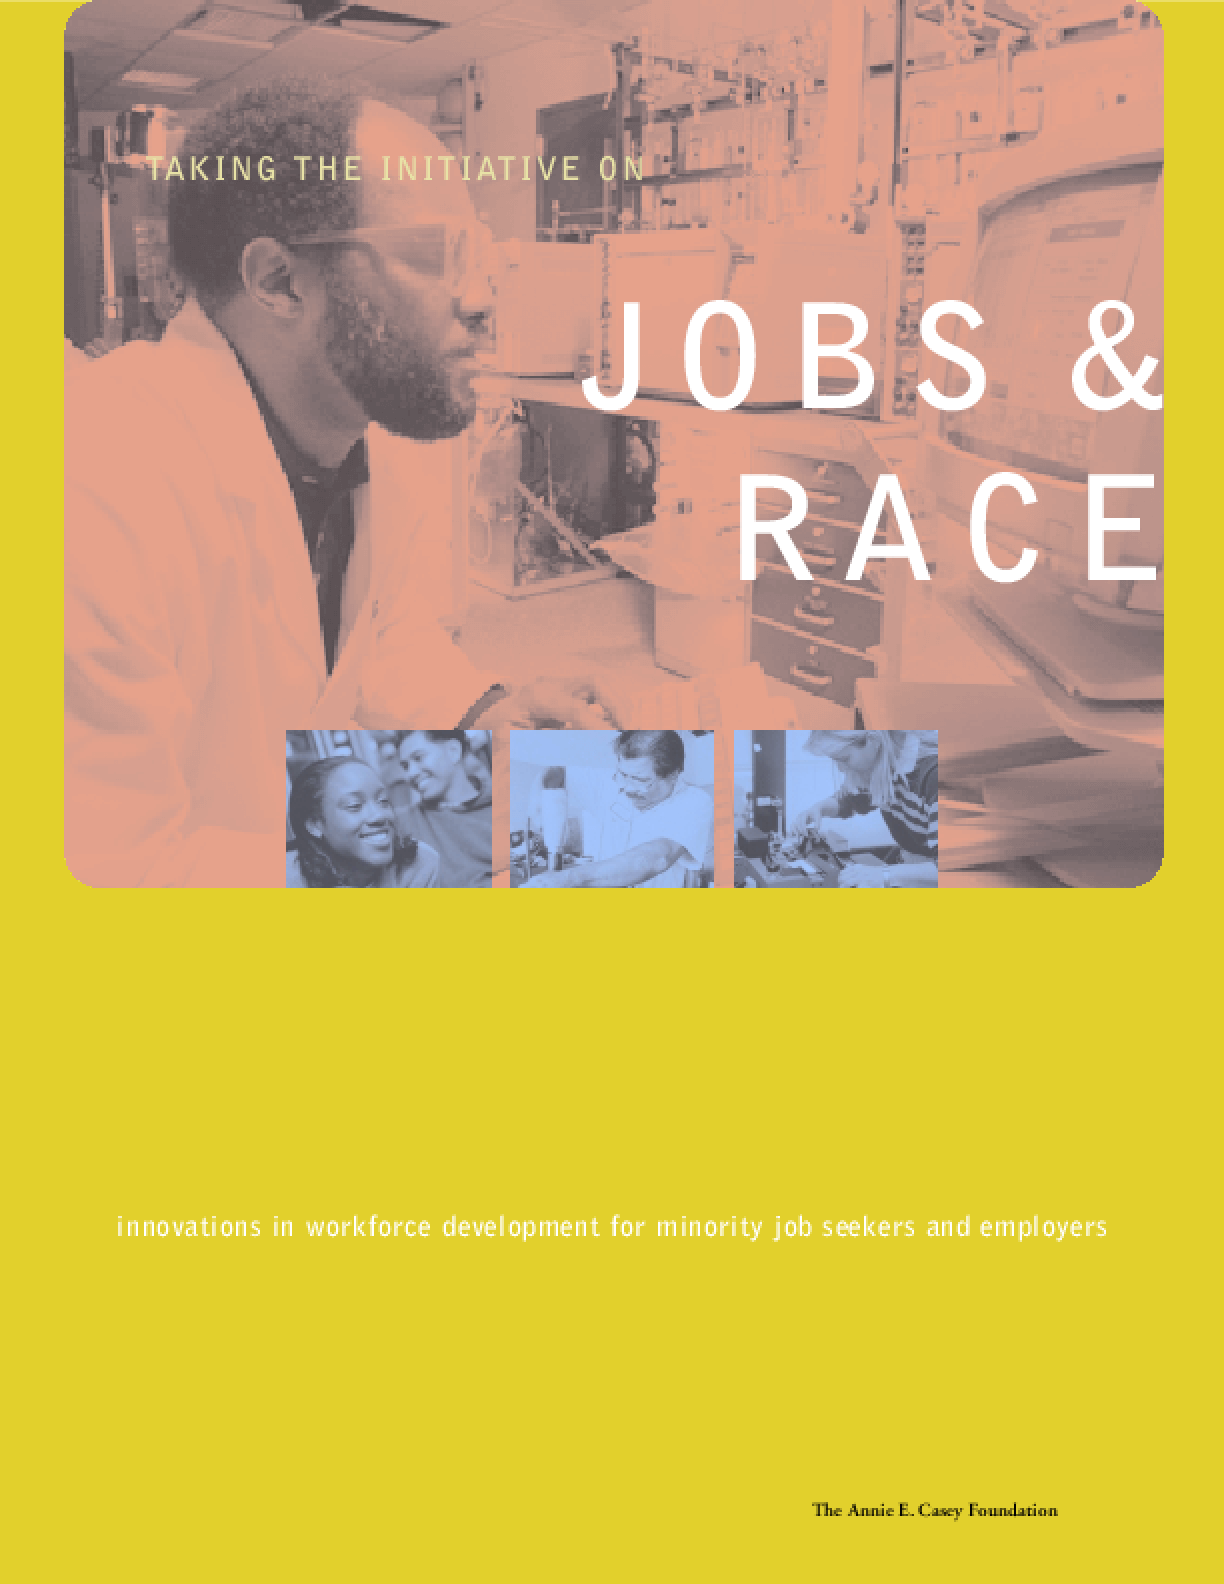 Taking the Initiative on Jobs and Race